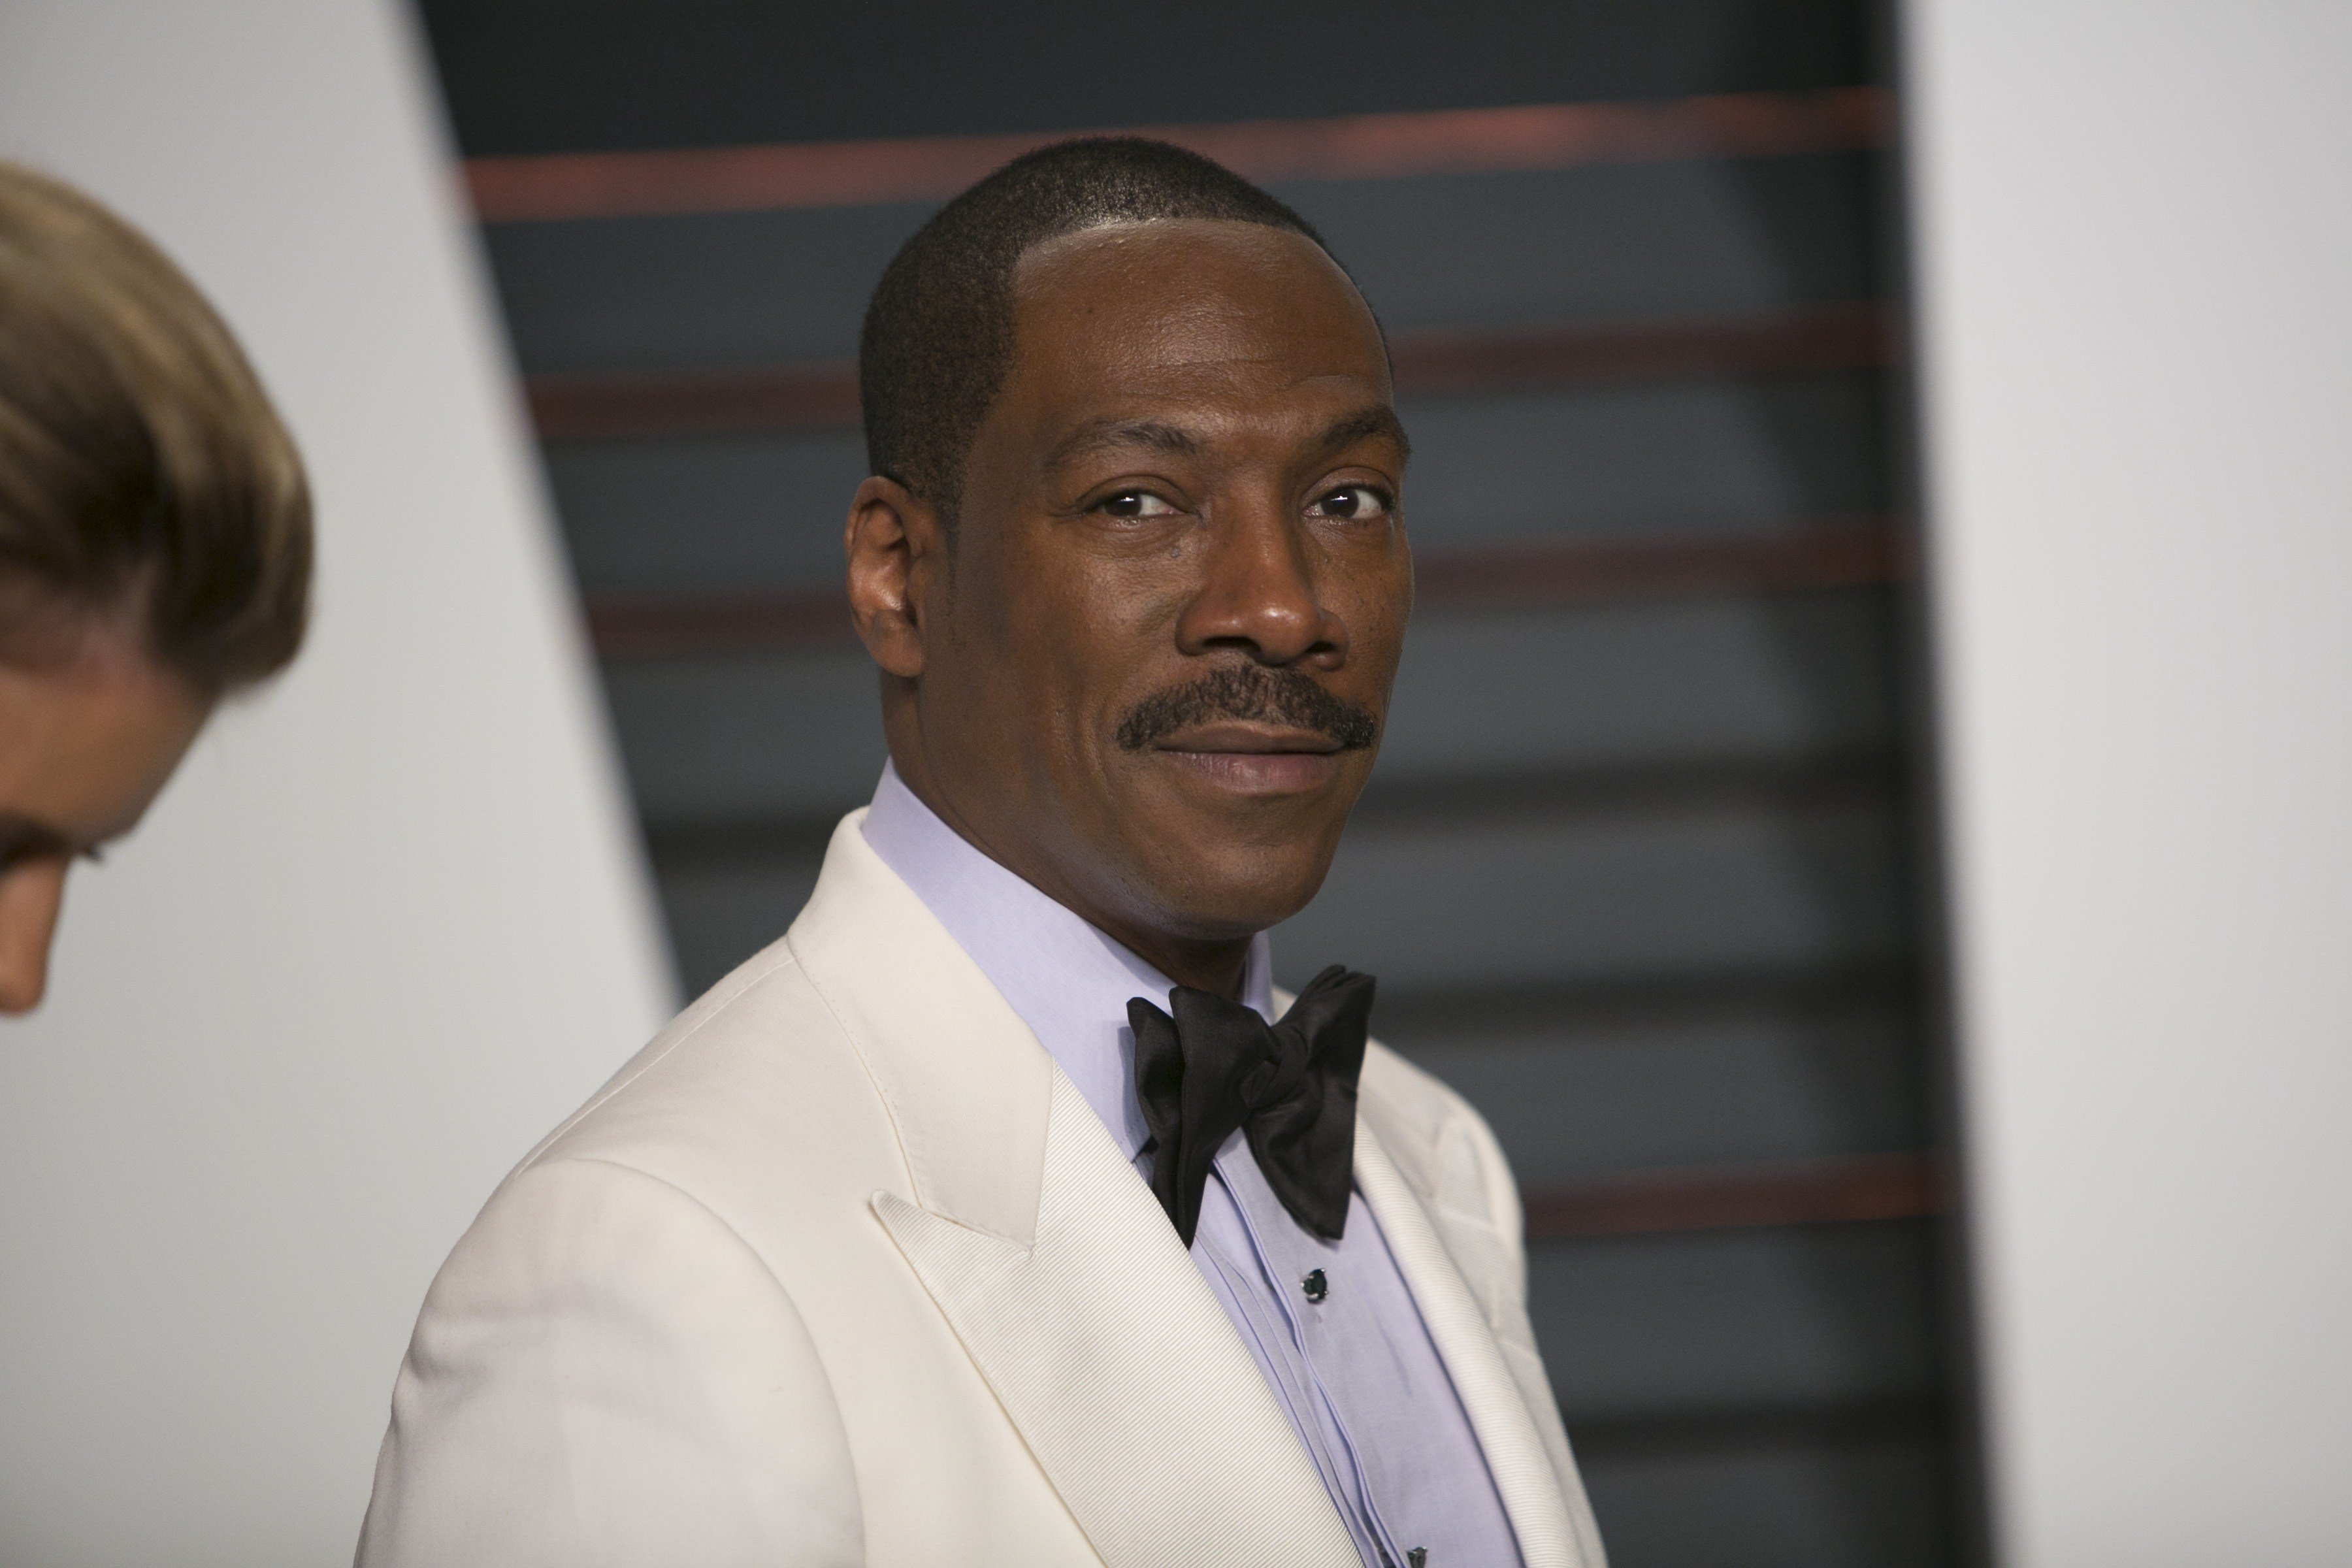 Eddie Murphy posing at the  2015 Vanity Fair Oscar Party on February 22, 2015 in Beverly Hills, California. | Source: Getty Images